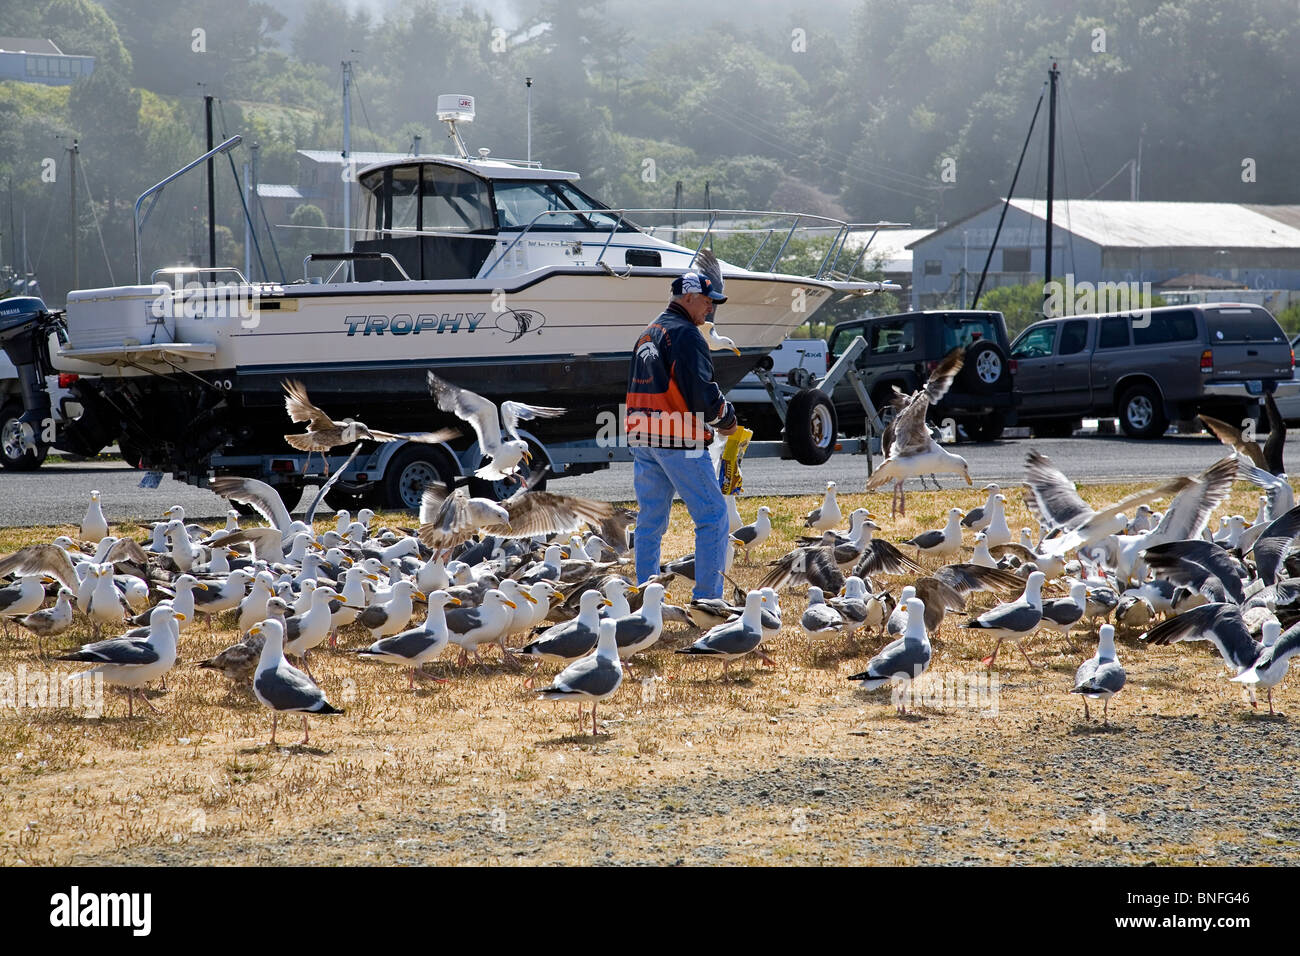 A man feeding seagulls at the harbor in Brookings, Oregon, on the Oregon Pacific Coast - Stock Image